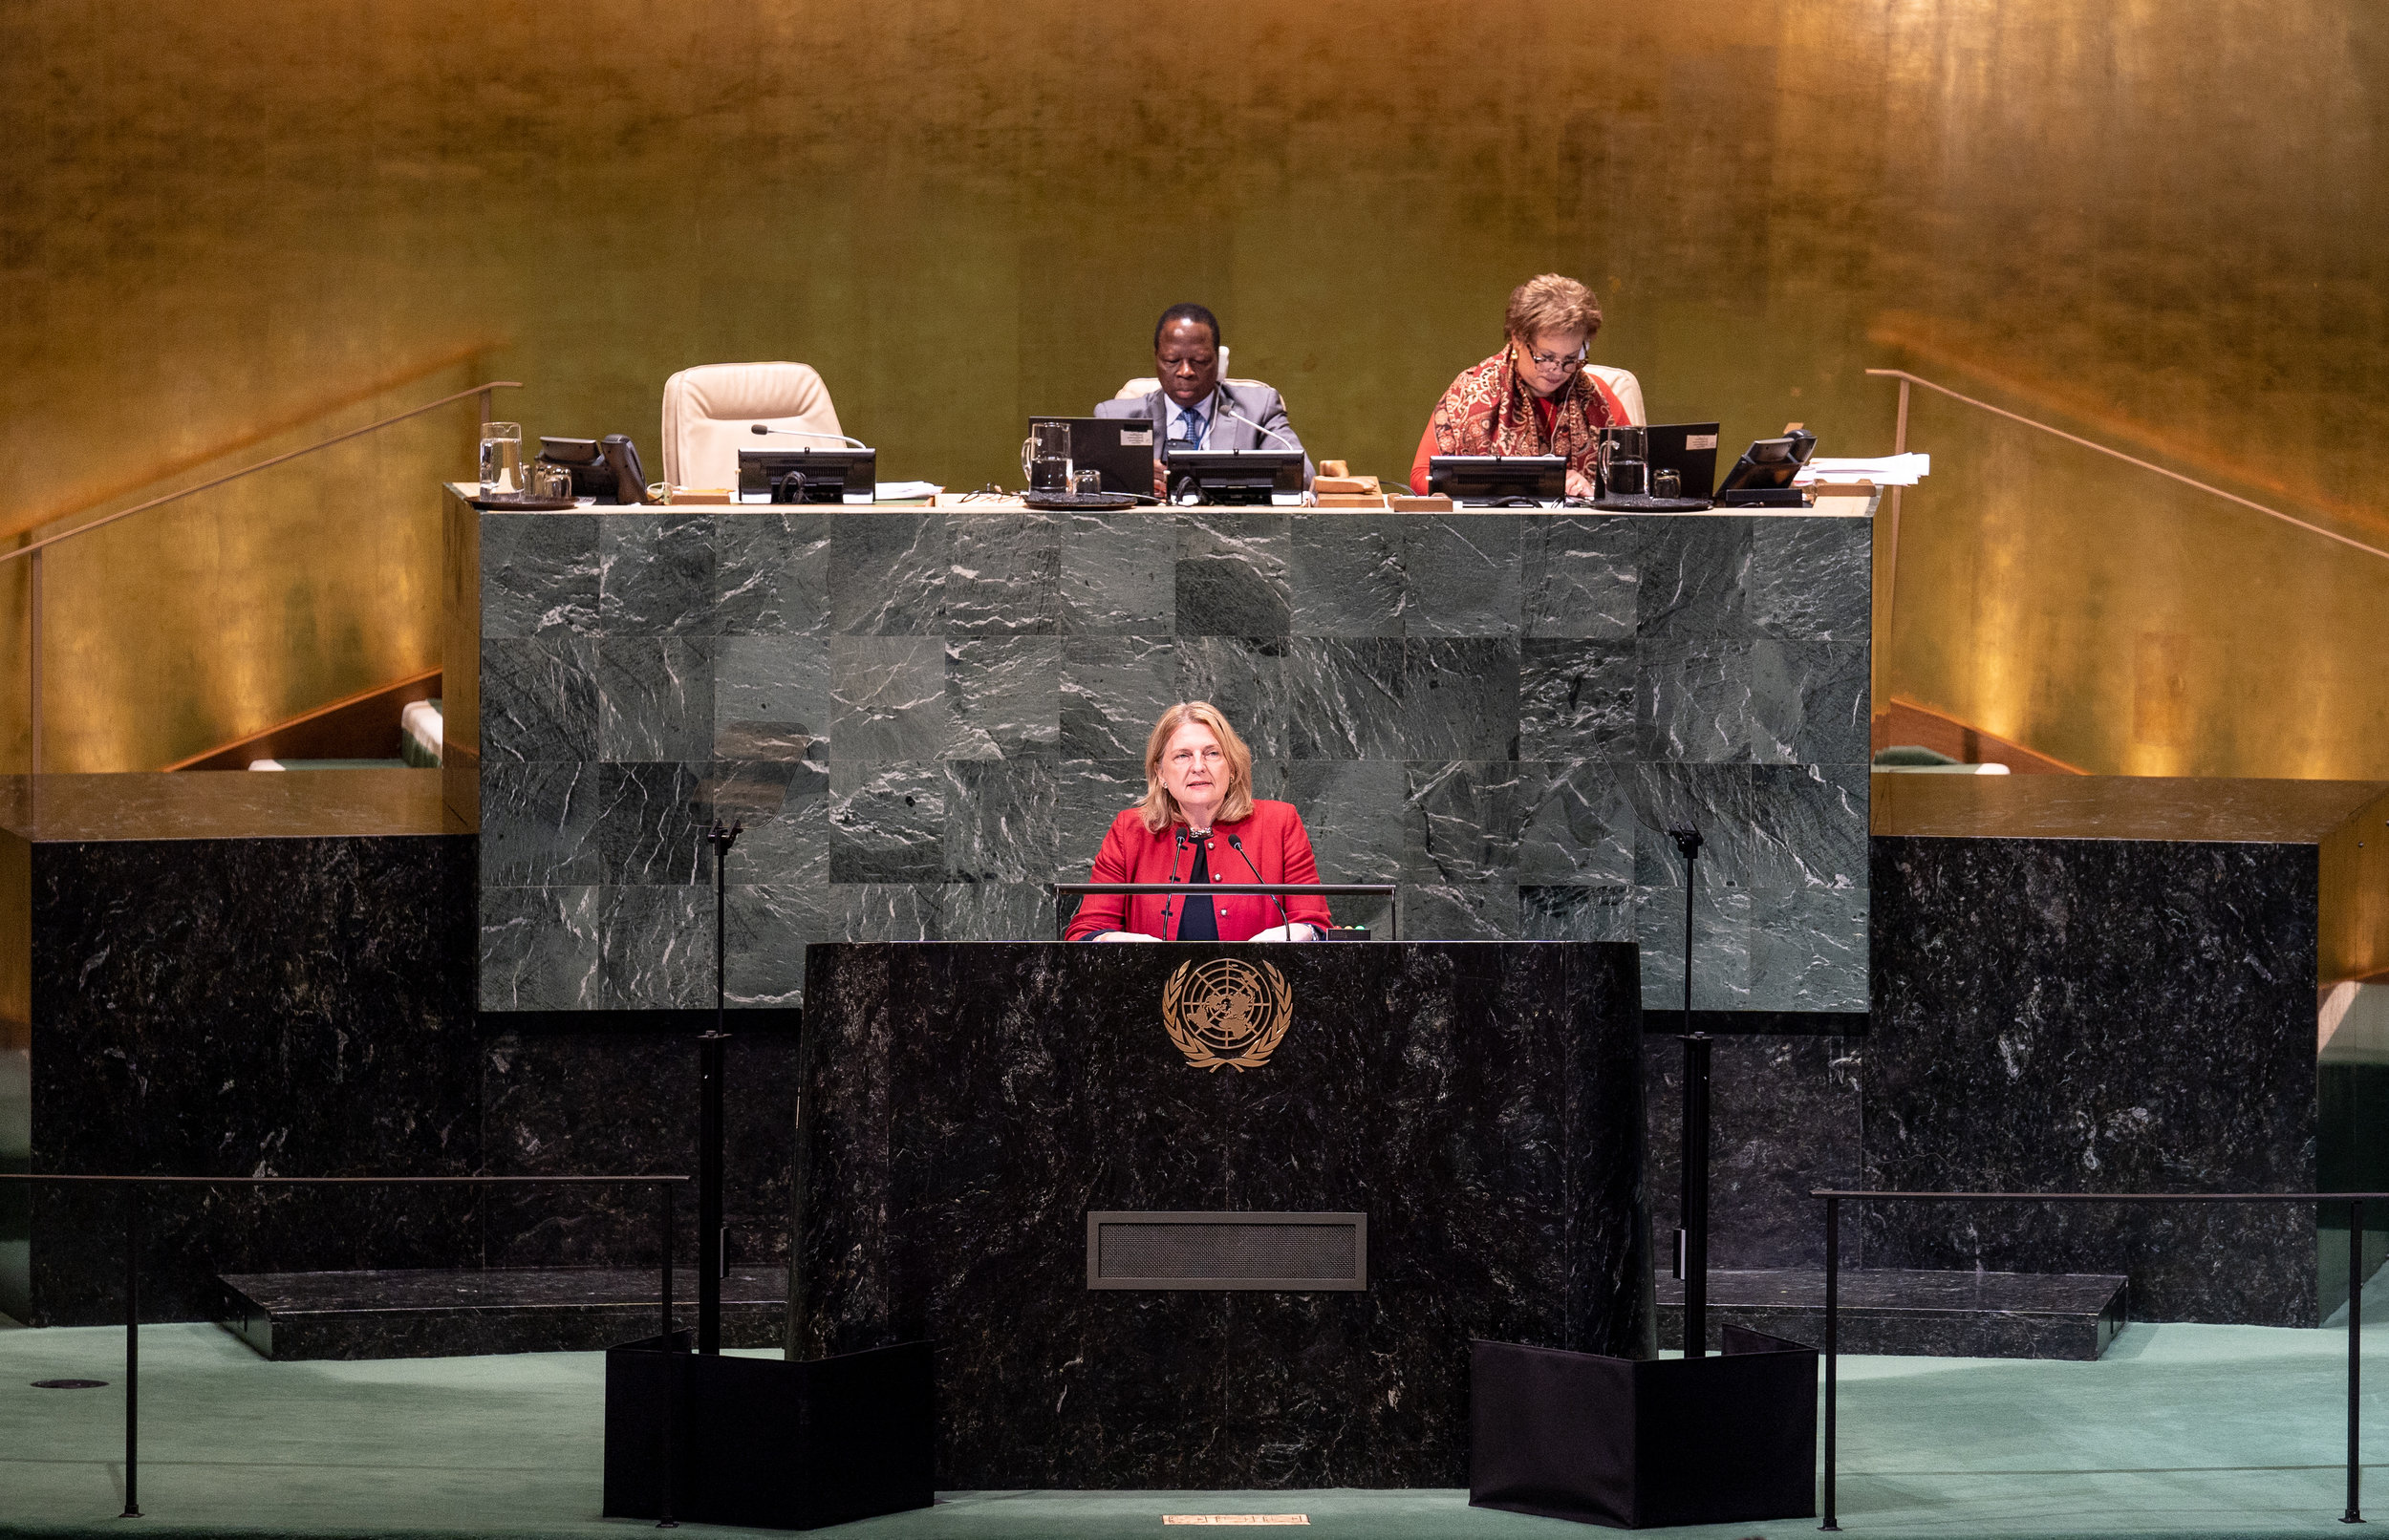 Foreign Minister Karin Kneissl addressing the UN General Assembly on September 29, 2018 (c) Austrian Ministry of Foreign Affairs